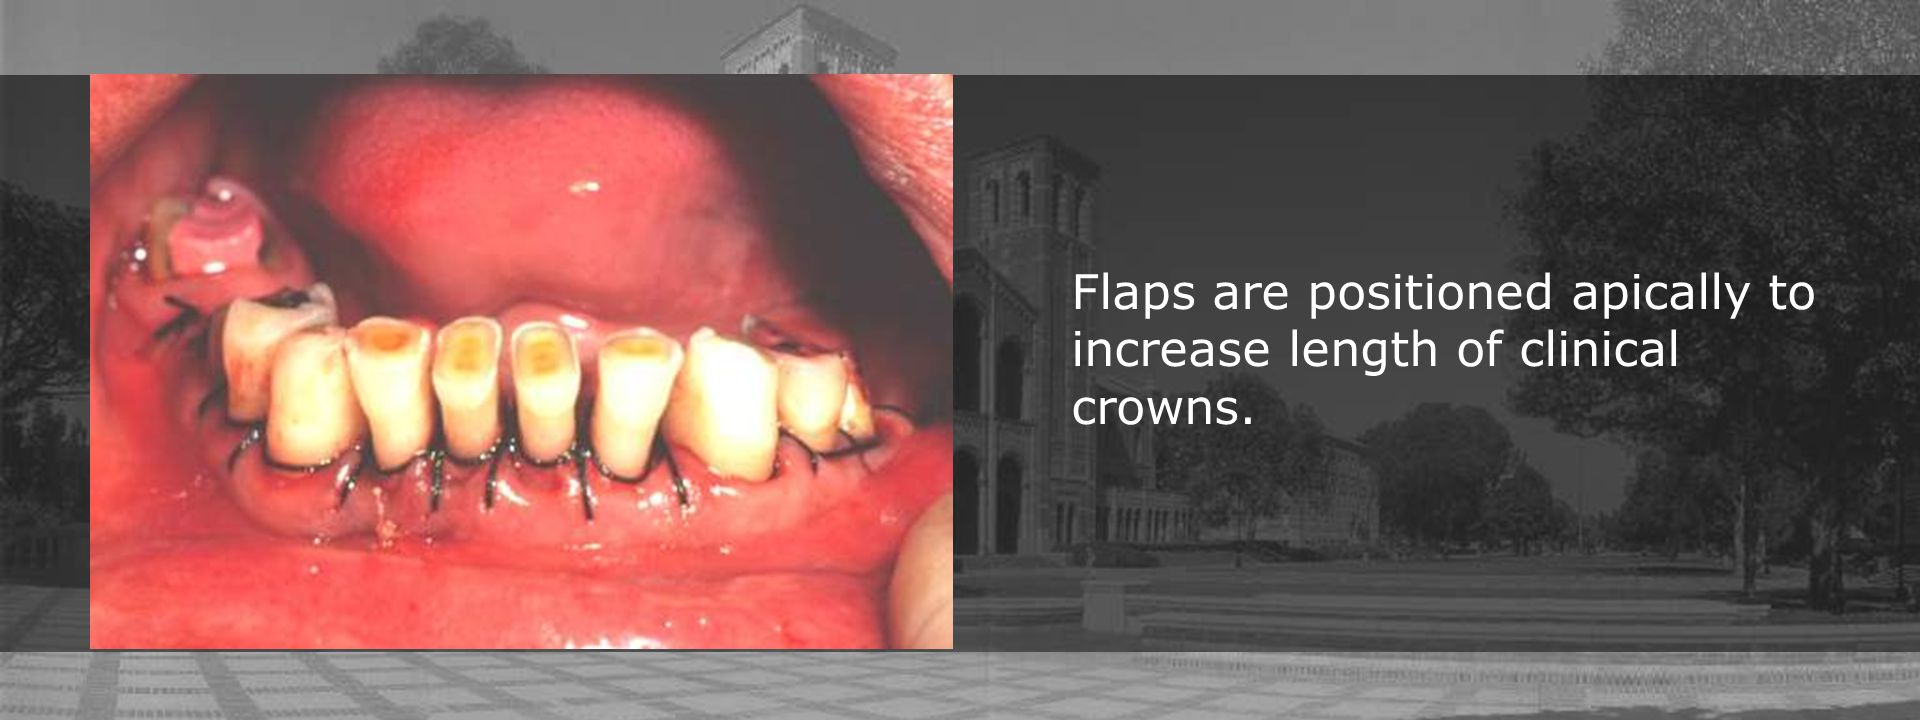 Flaps are positioned apically to increase length of clinical crowns.